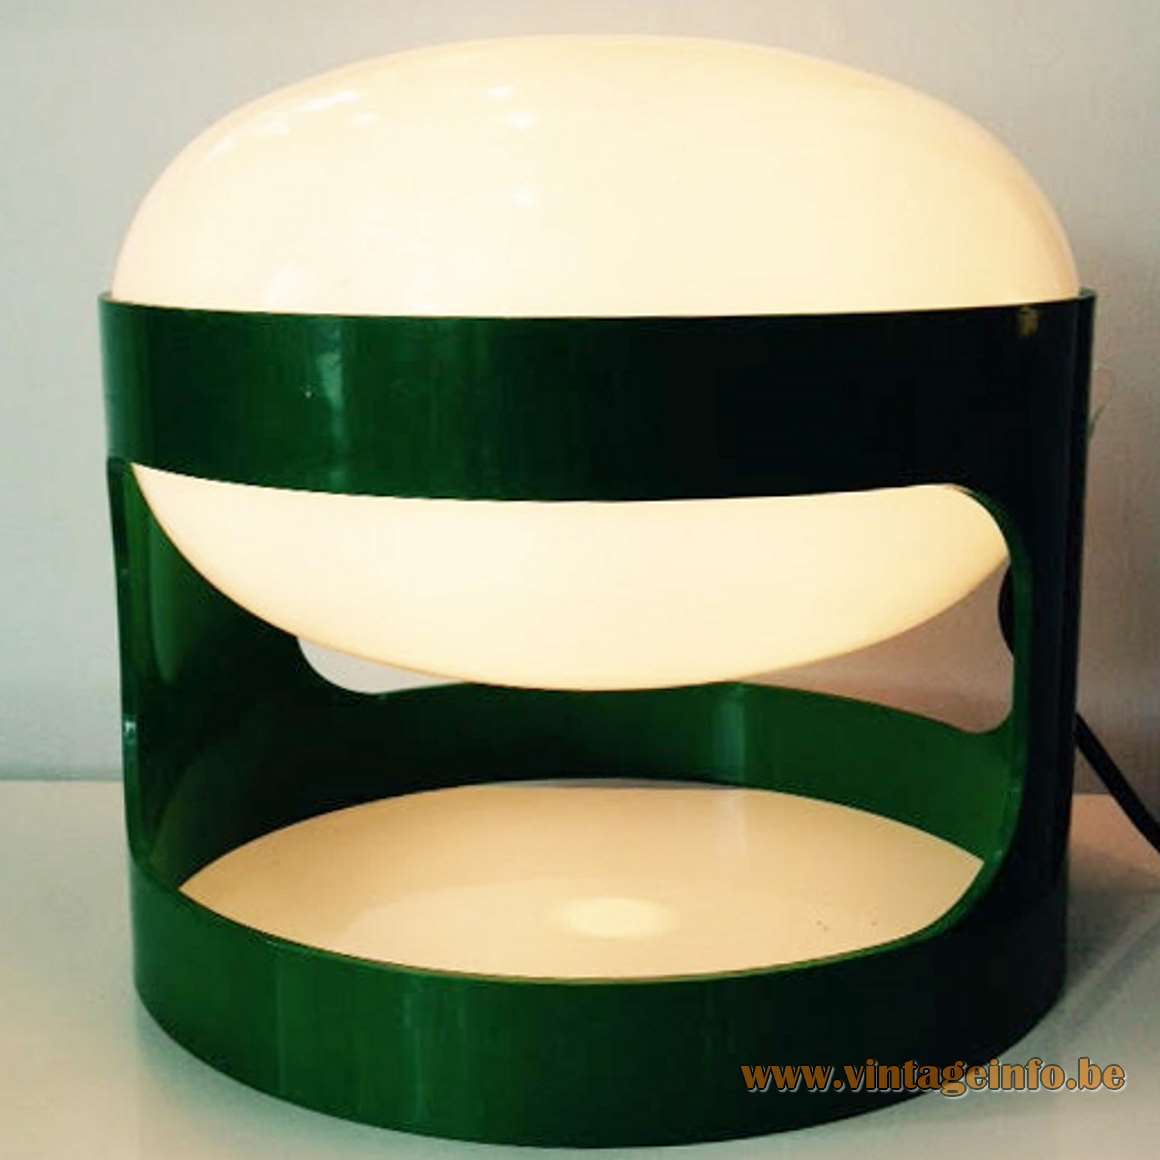 Joe Colombo KD27 Kartell Table Lamp - Green And White Version